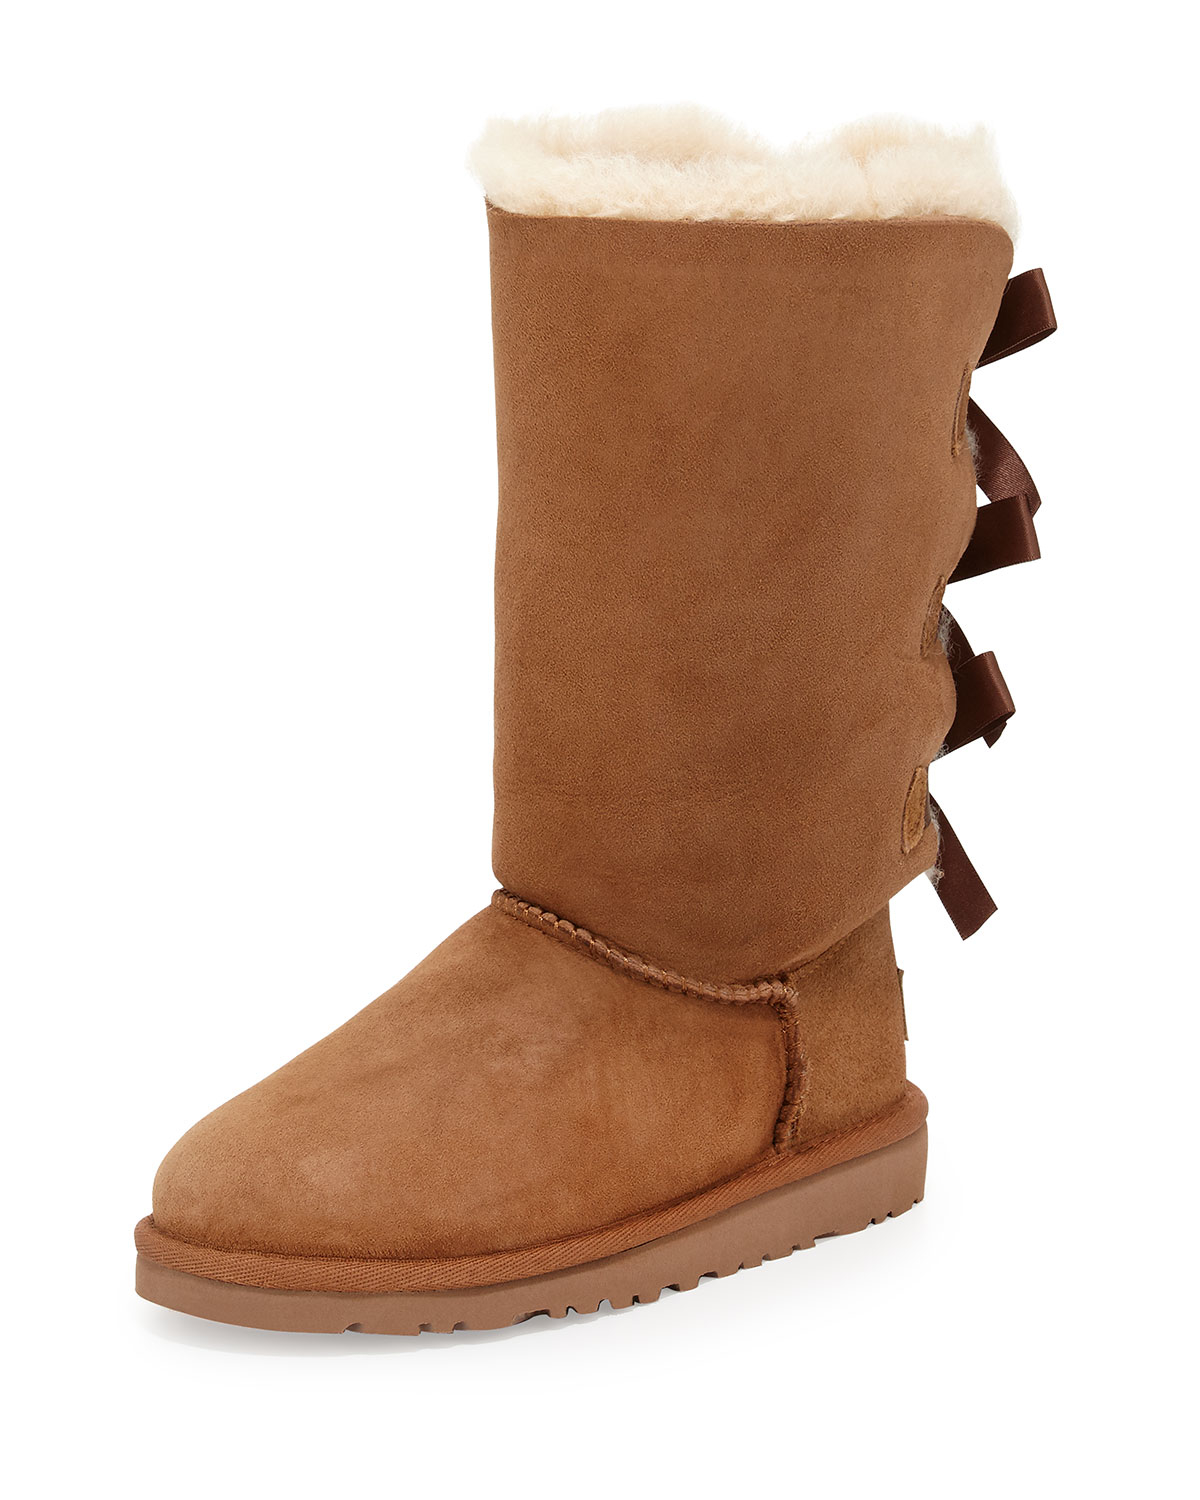 sheepskin for uggs